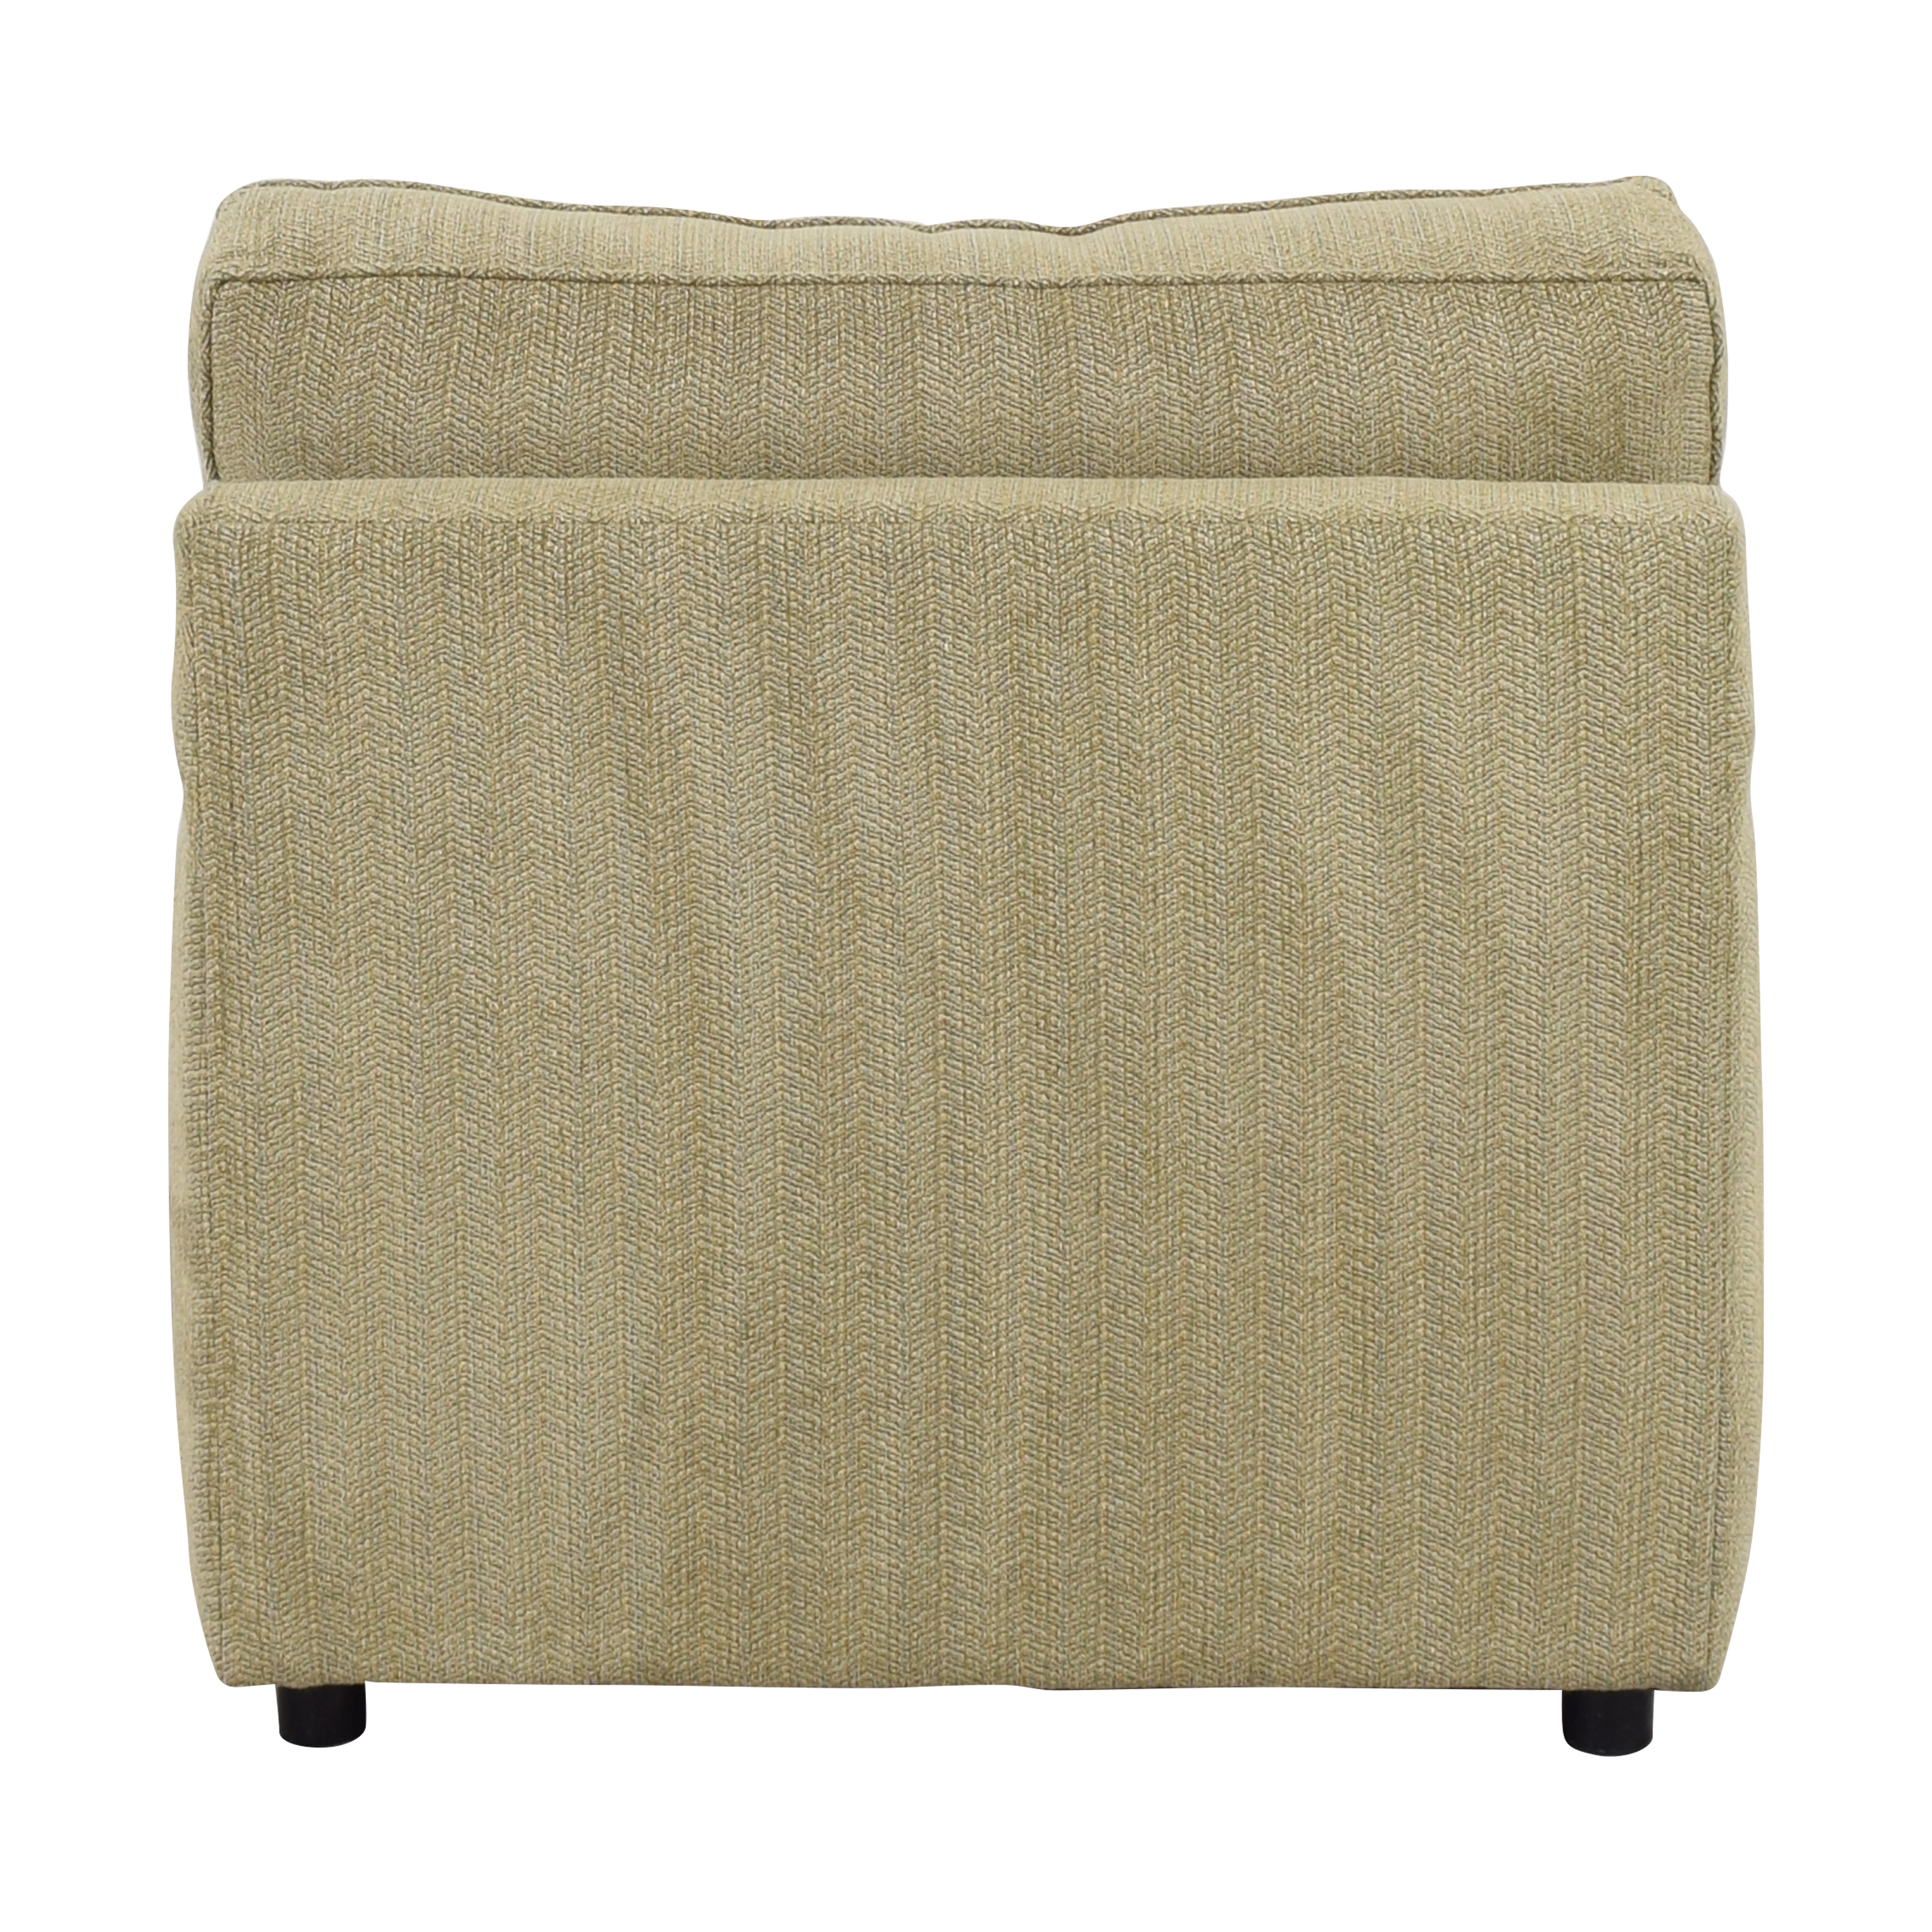 Thomasville Thomasville Accent Chair coupon